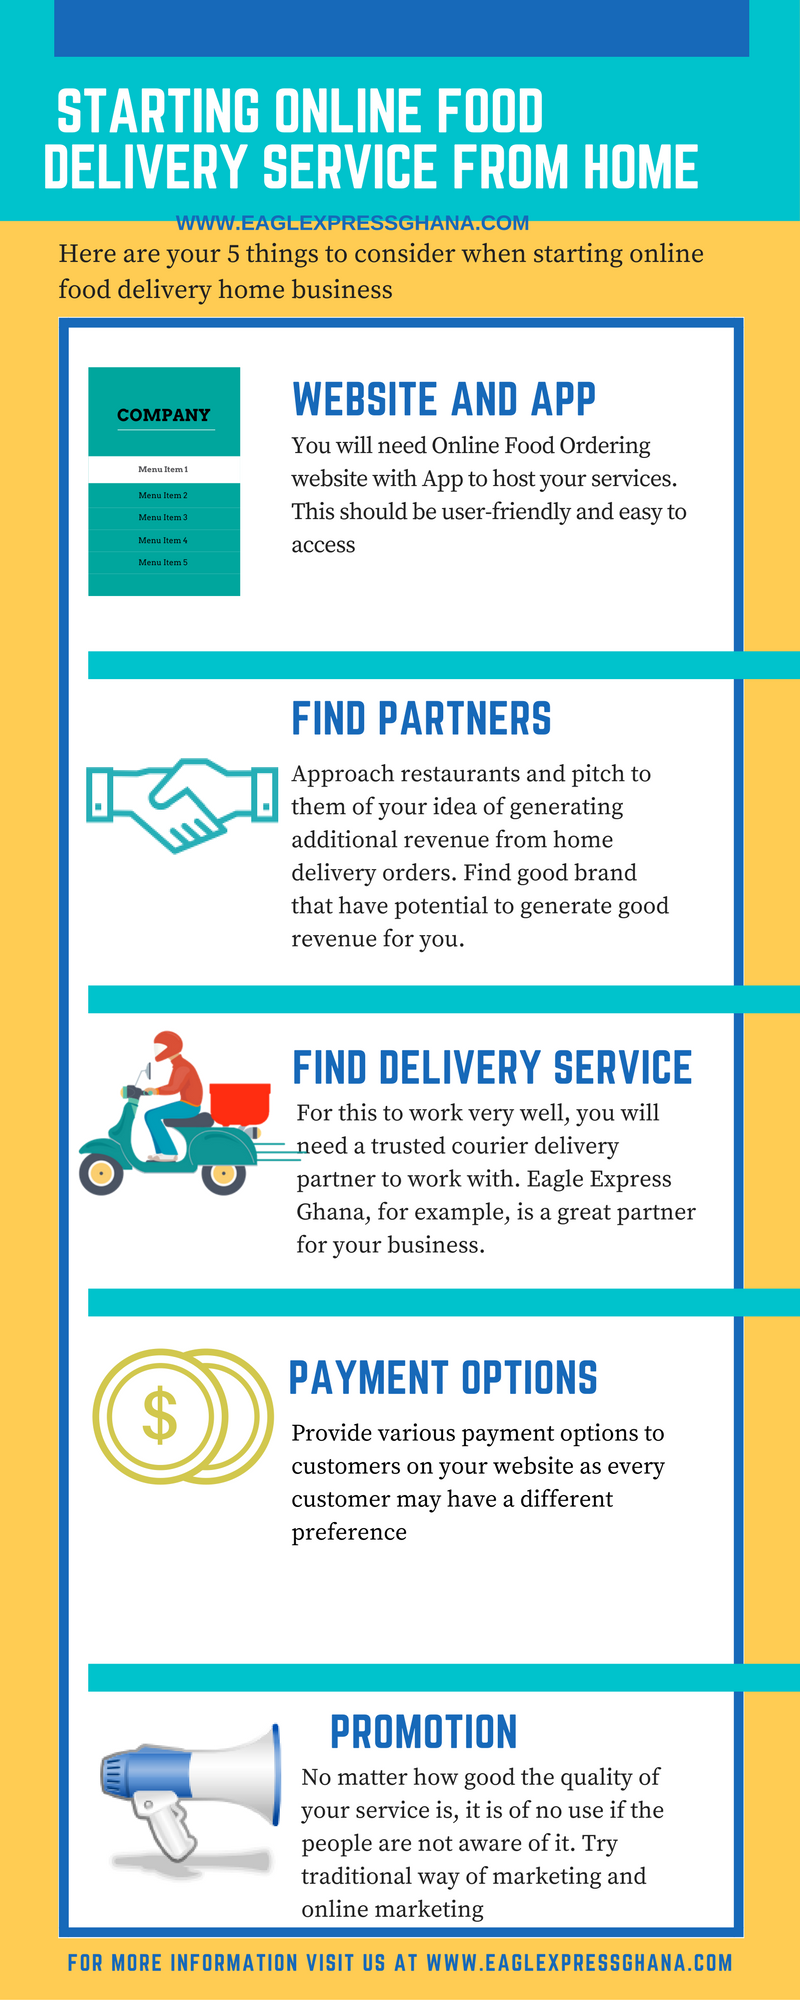 5 things to consider when starting online food delivery service